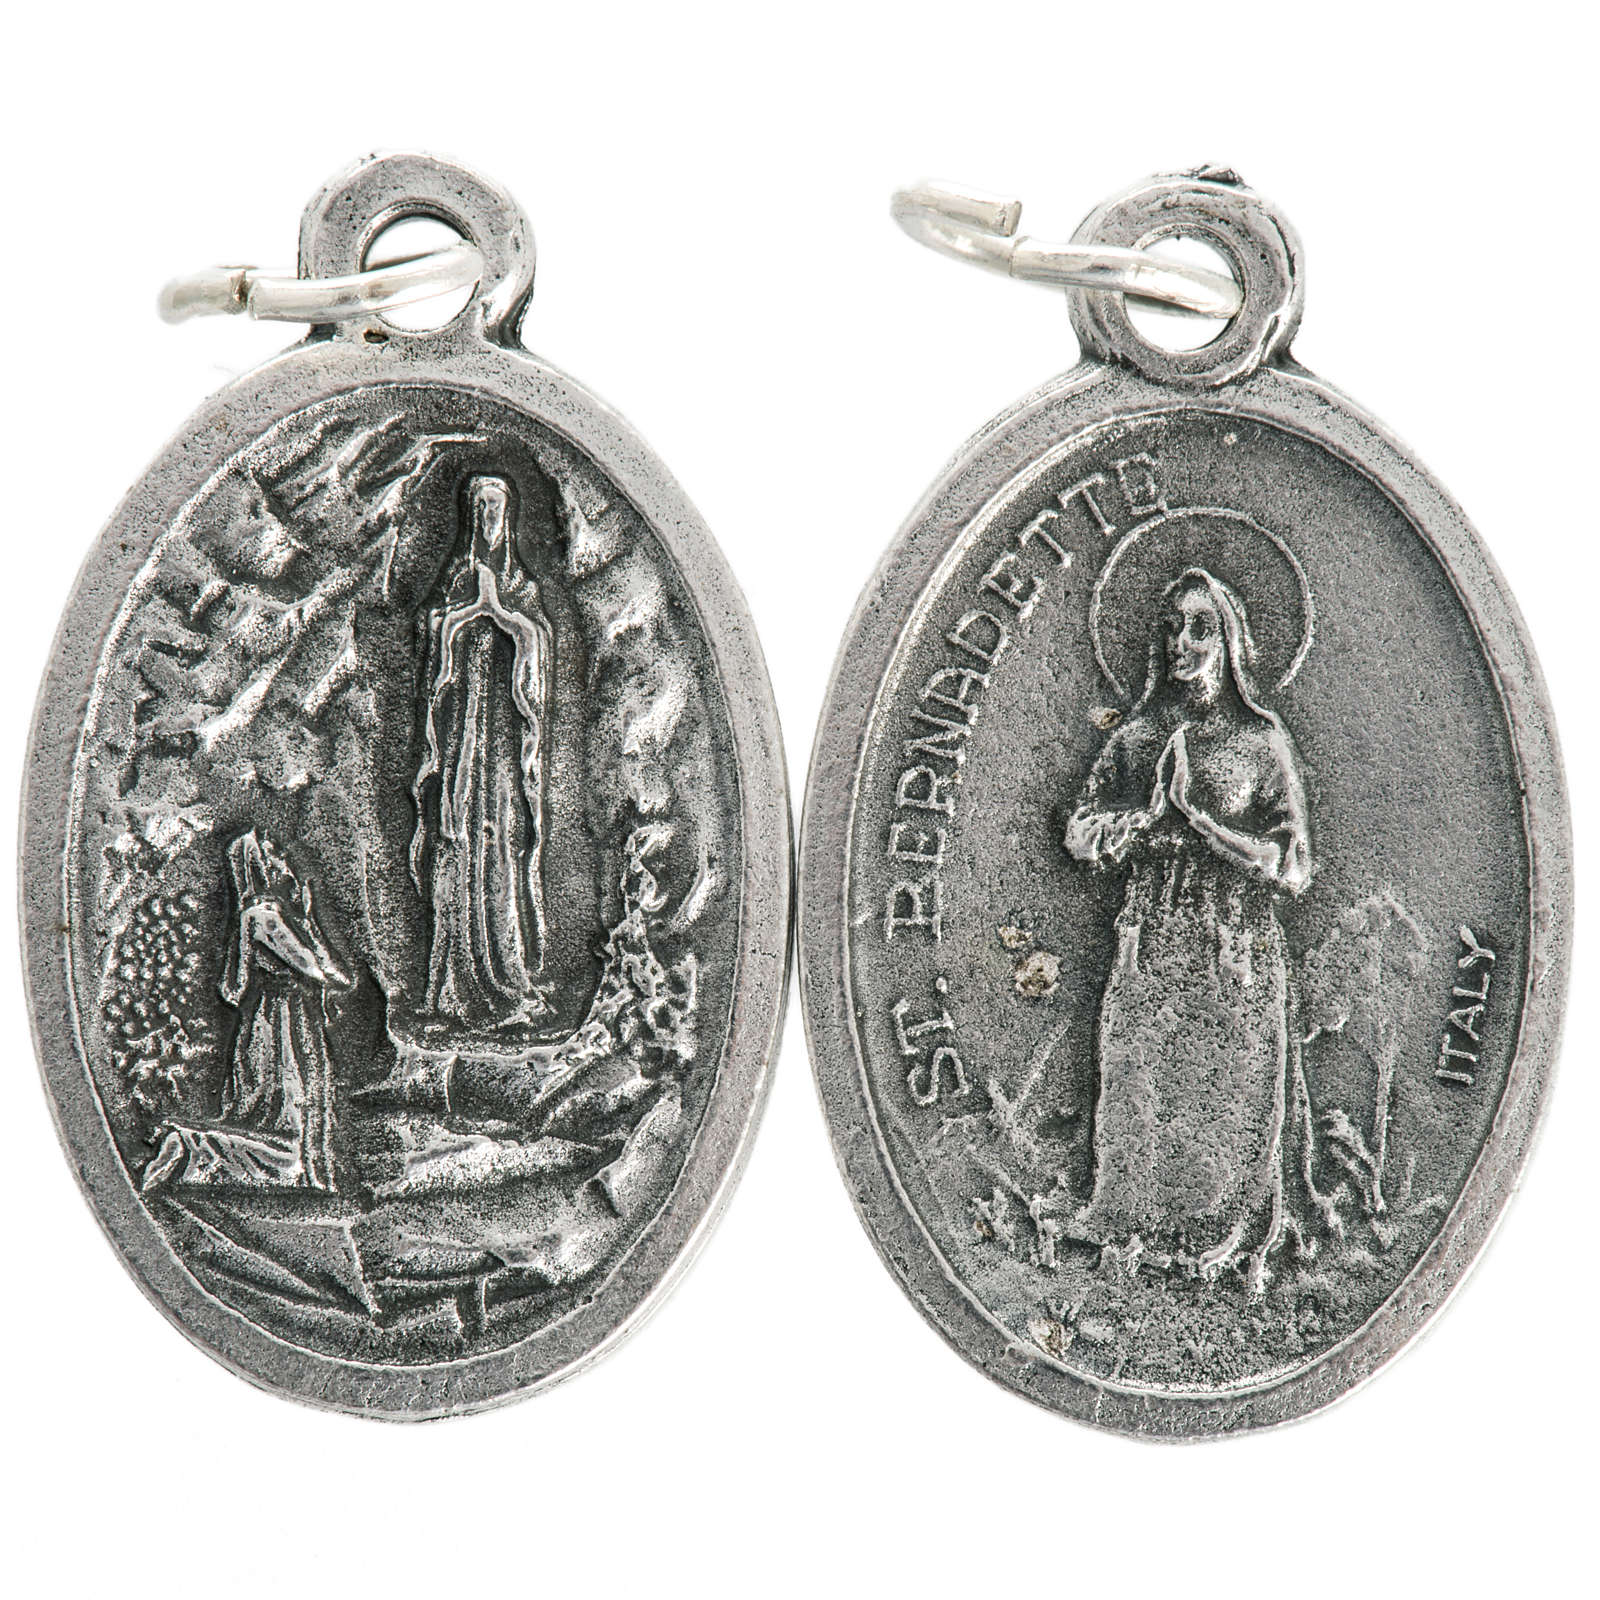 Our Lady of Lourdes oval medal in oxidised metal 20mm 4